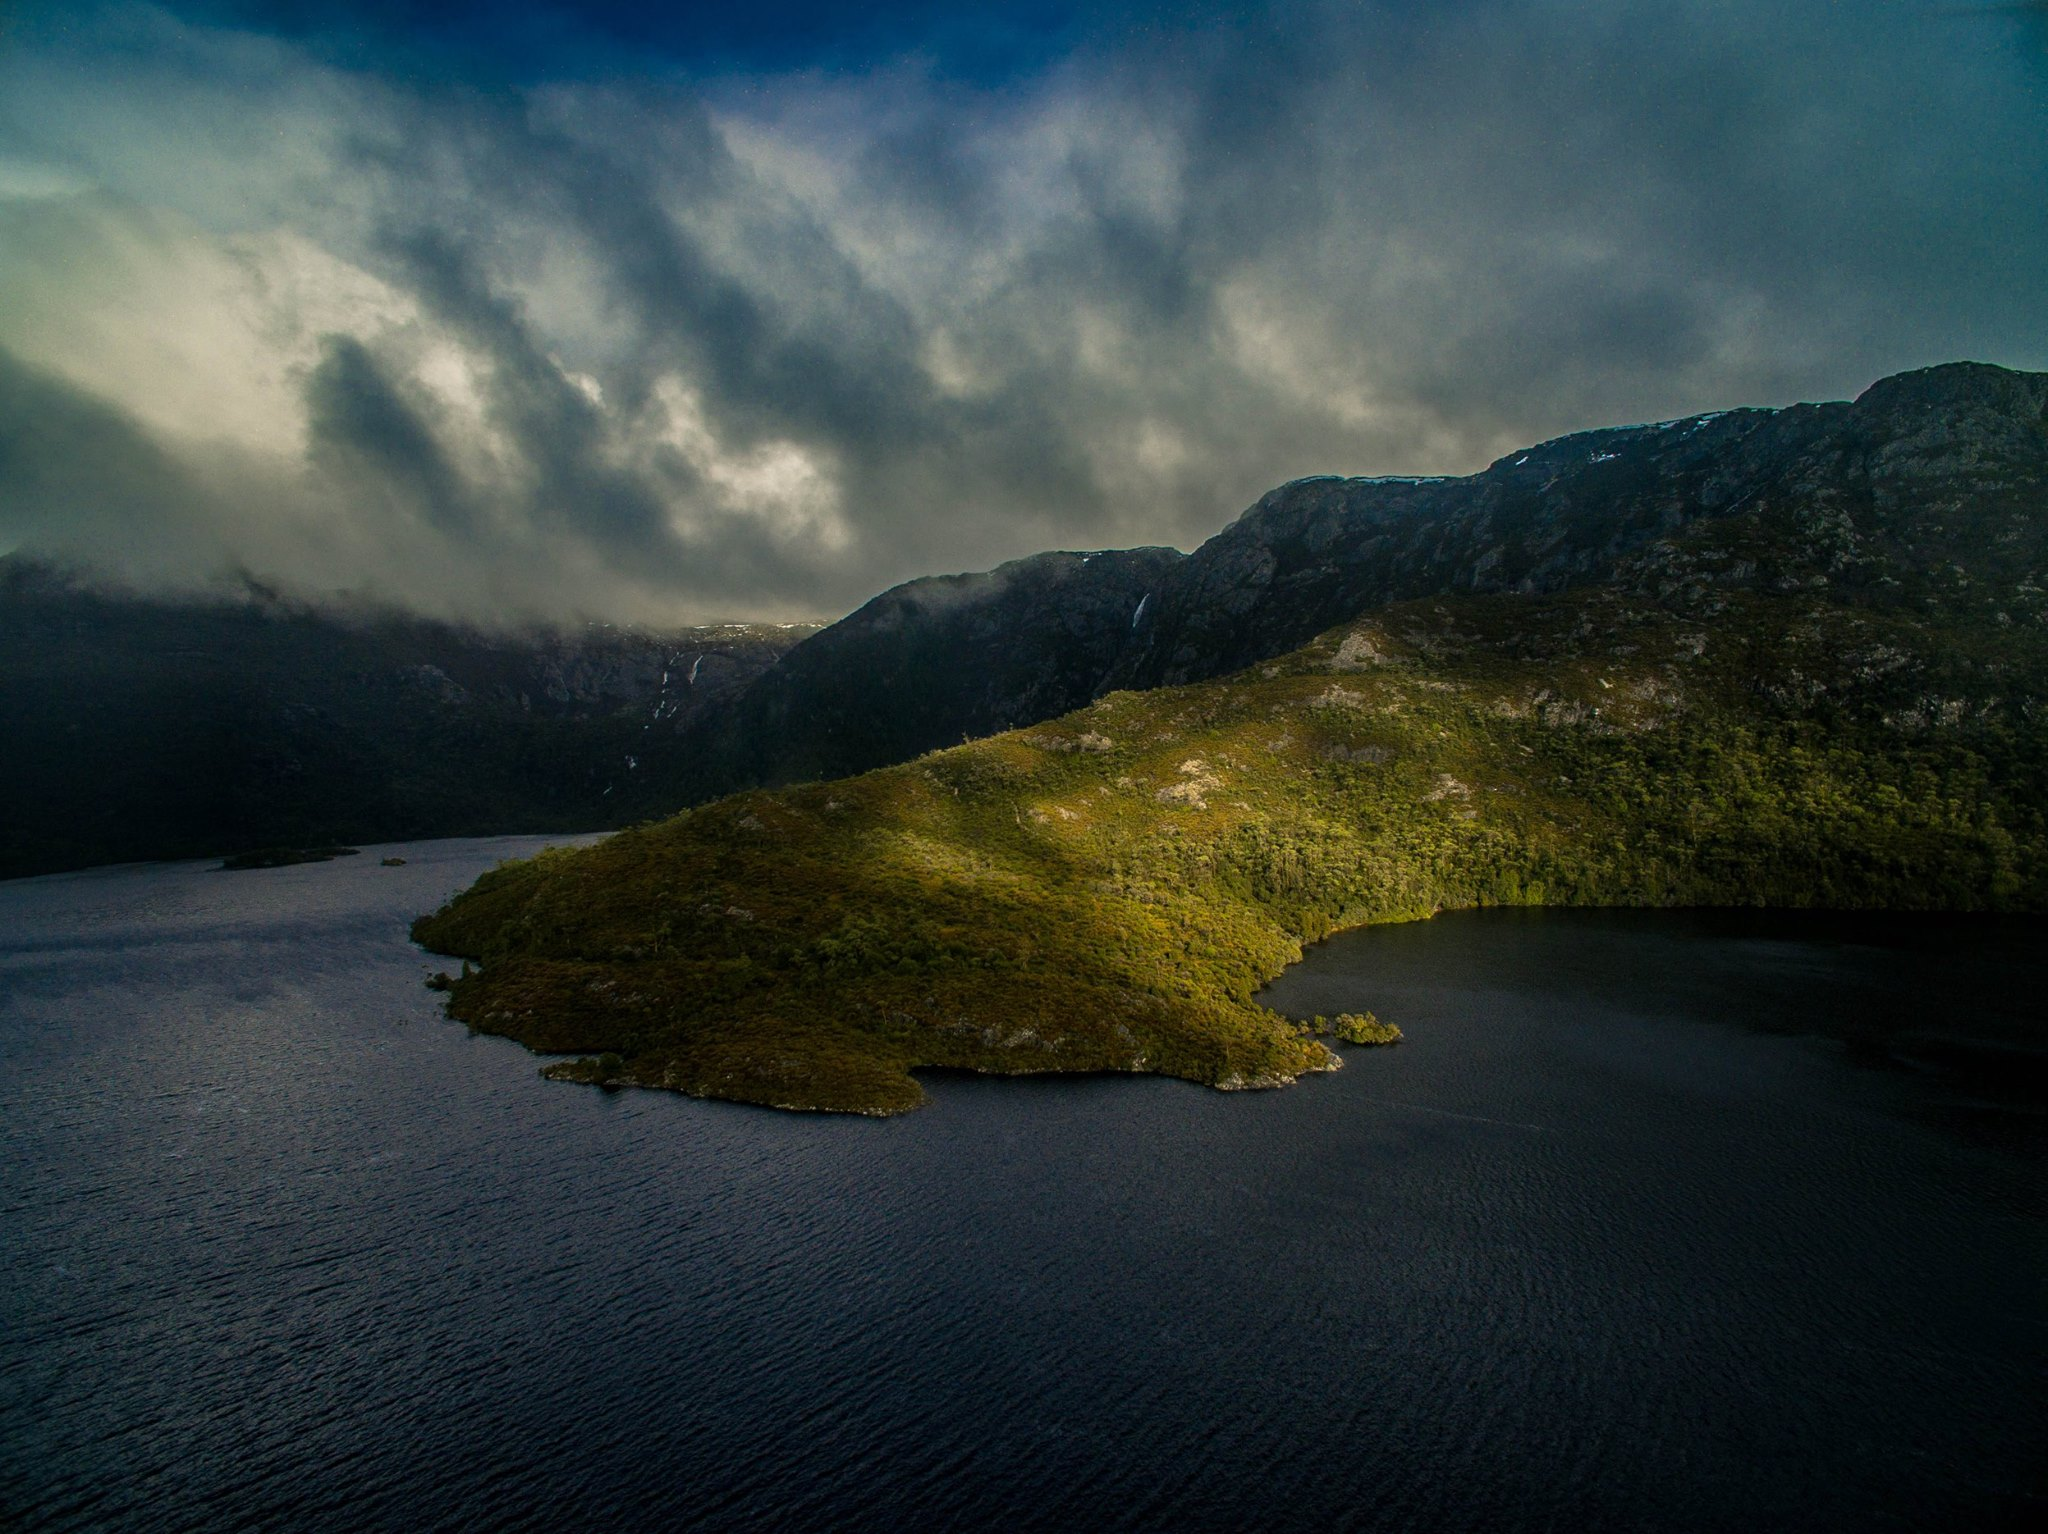 This is not the only attraction in Tasmania, but it is definitely the one that you need to visit when you are in Tasmania. There are various walks and hiking tracks that you could choose from. You can also choose to climb the summit of Cradle Mountain. The summit offers spectacular views of Dove Lake, Mount Ossa (Tasmania's highest peak) and offers incredible 360-degree panoramic views of an awe inspiring Jurassic landscape, carved out from glacial activity over the last ice age.